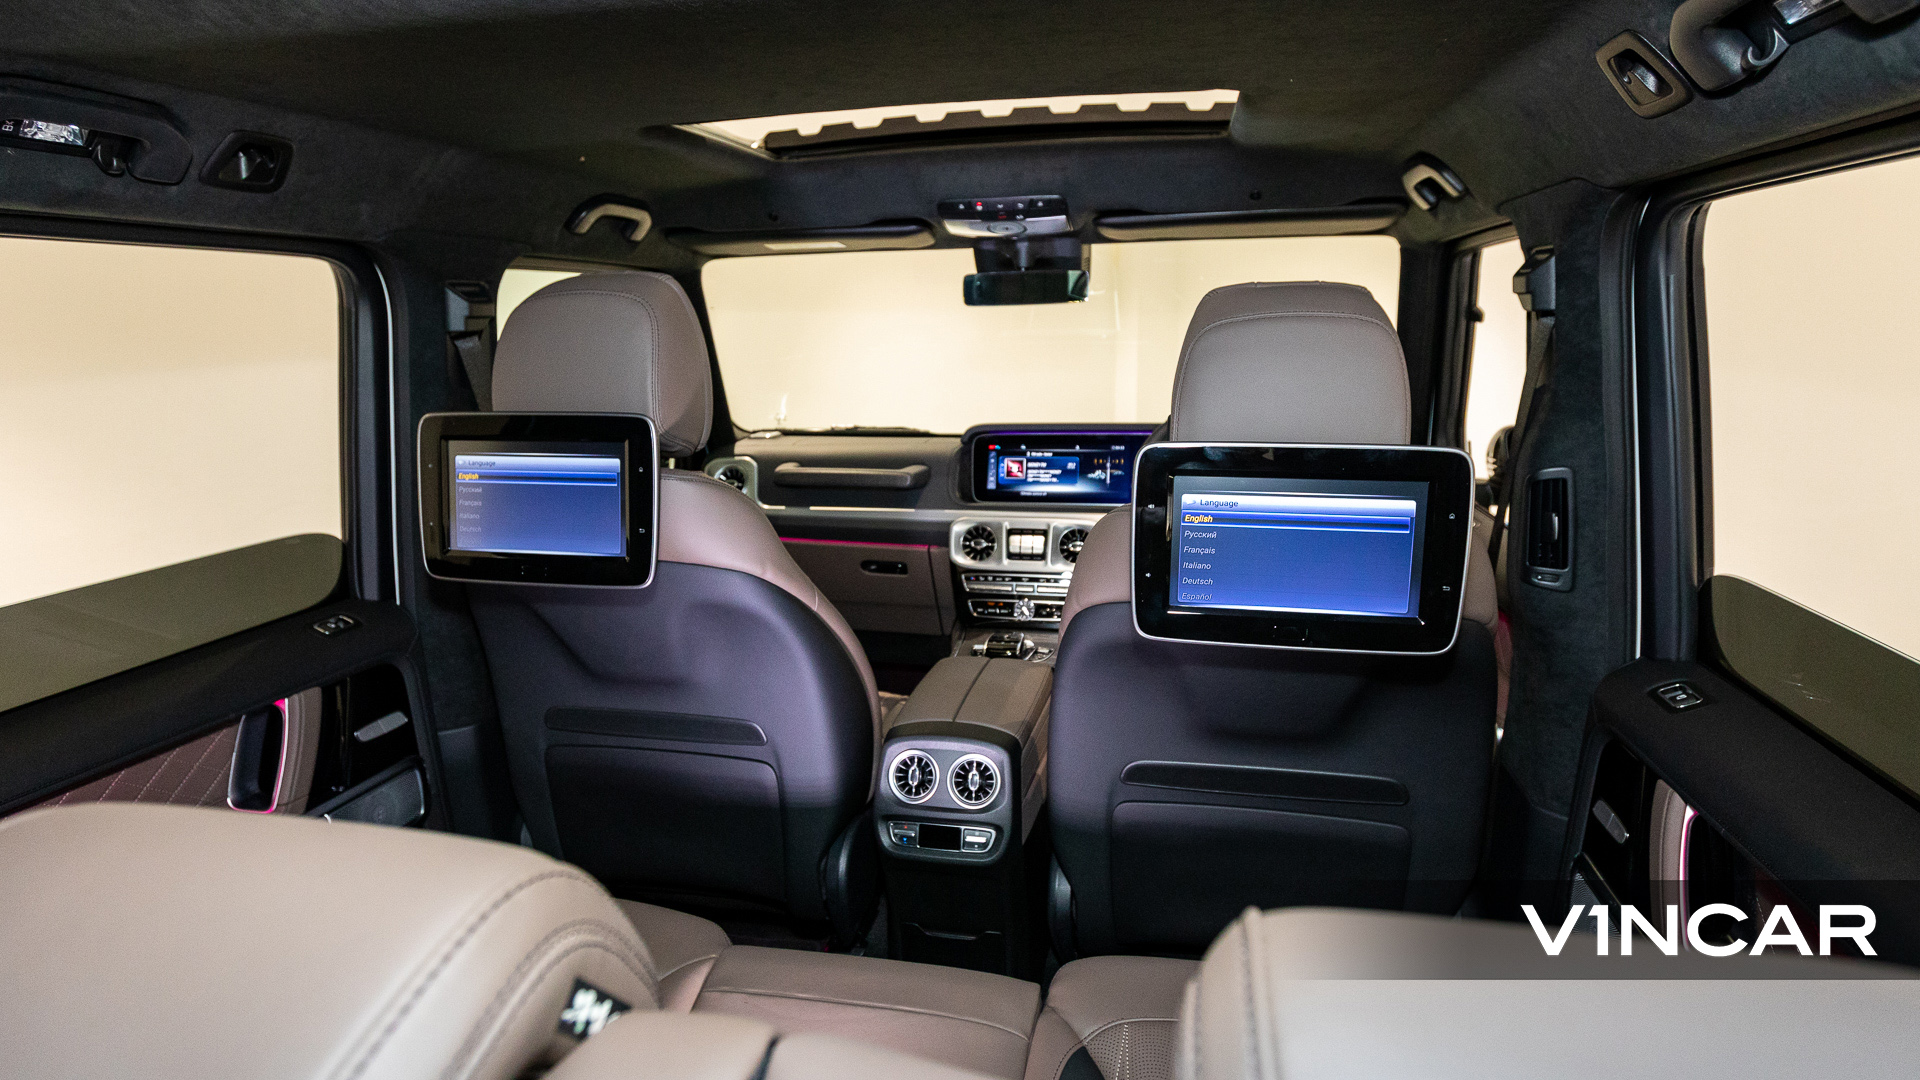 Mercedes-AMG G63 - Rear Seat Entertainment System 2